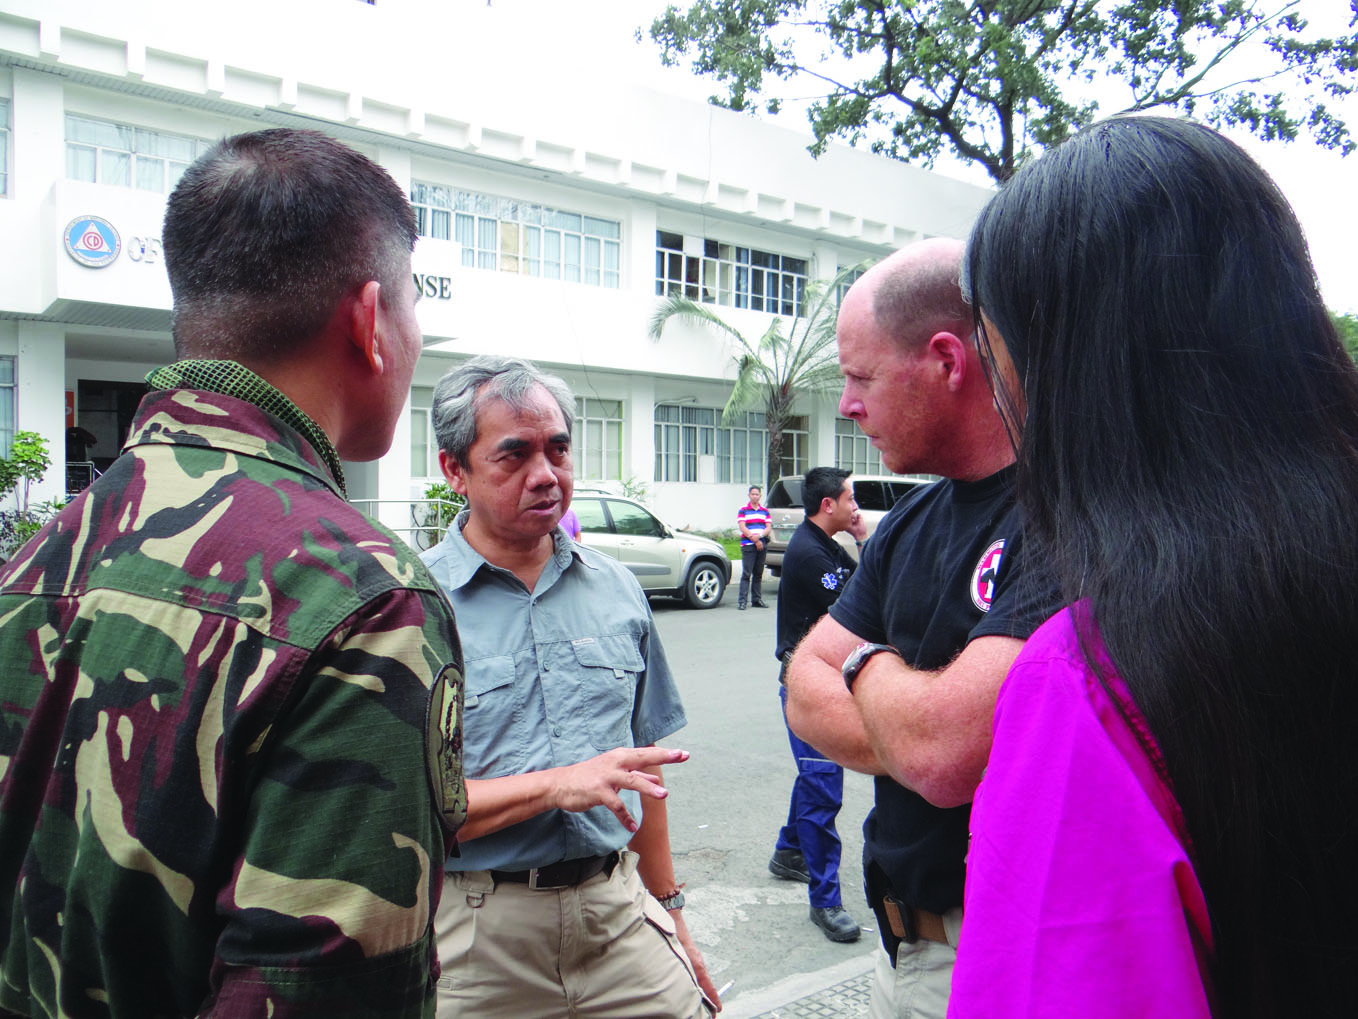 At the Office of Civil Defense in Manila: Major Manuel Garcia, Head of Joint Operations Disaster Response (PI), Philippine Secretary of National Defense Voltaire Gazmin, Dr. Mike Karch and new MMM member Jocylane Dinsay (RN) of Los Angeles. Photo courtesy: Katie Dease.